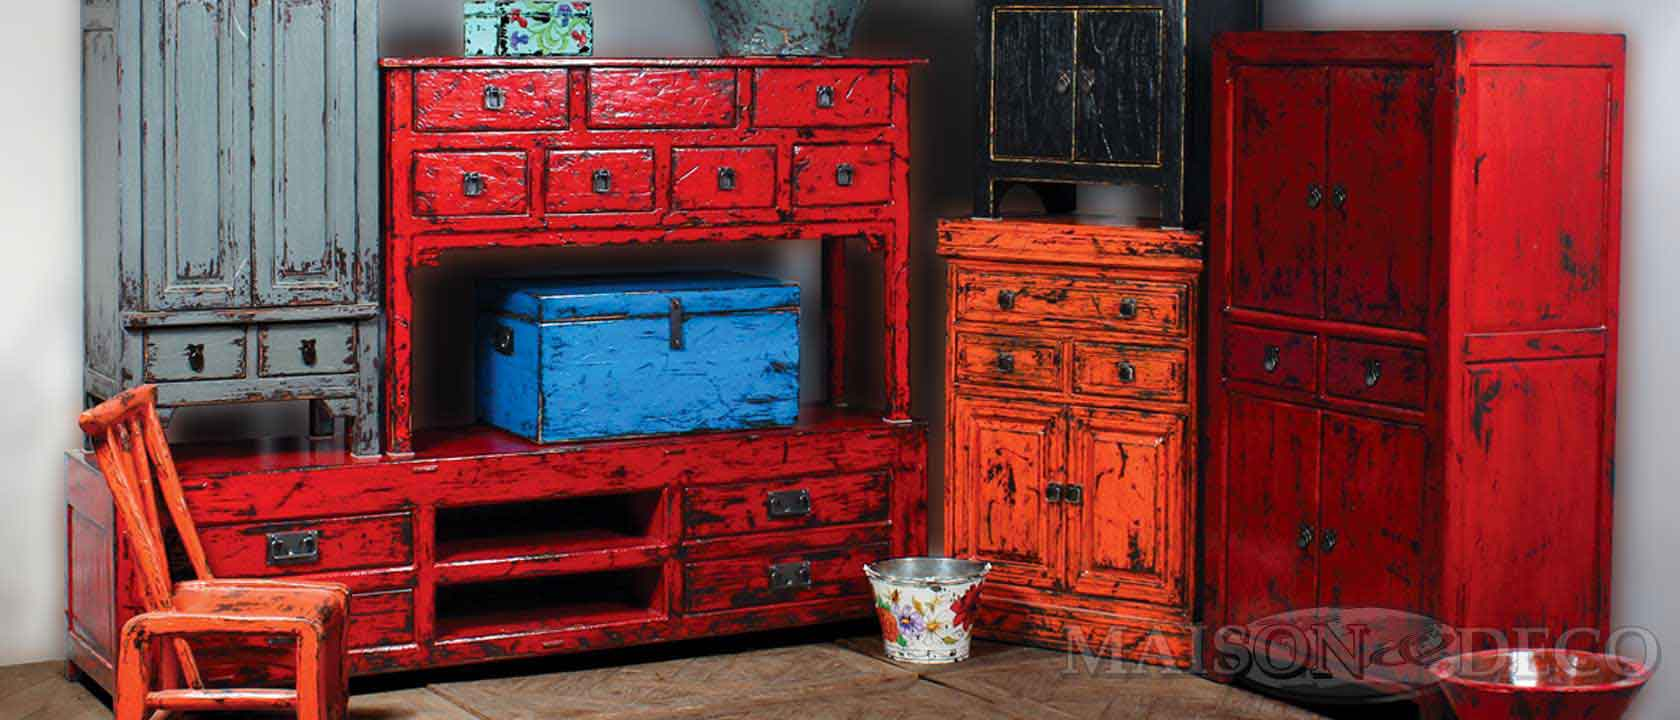 welcome to maison et deco a furniture factory in. Black Bedroom Furniture Sets. Home Design Ideas